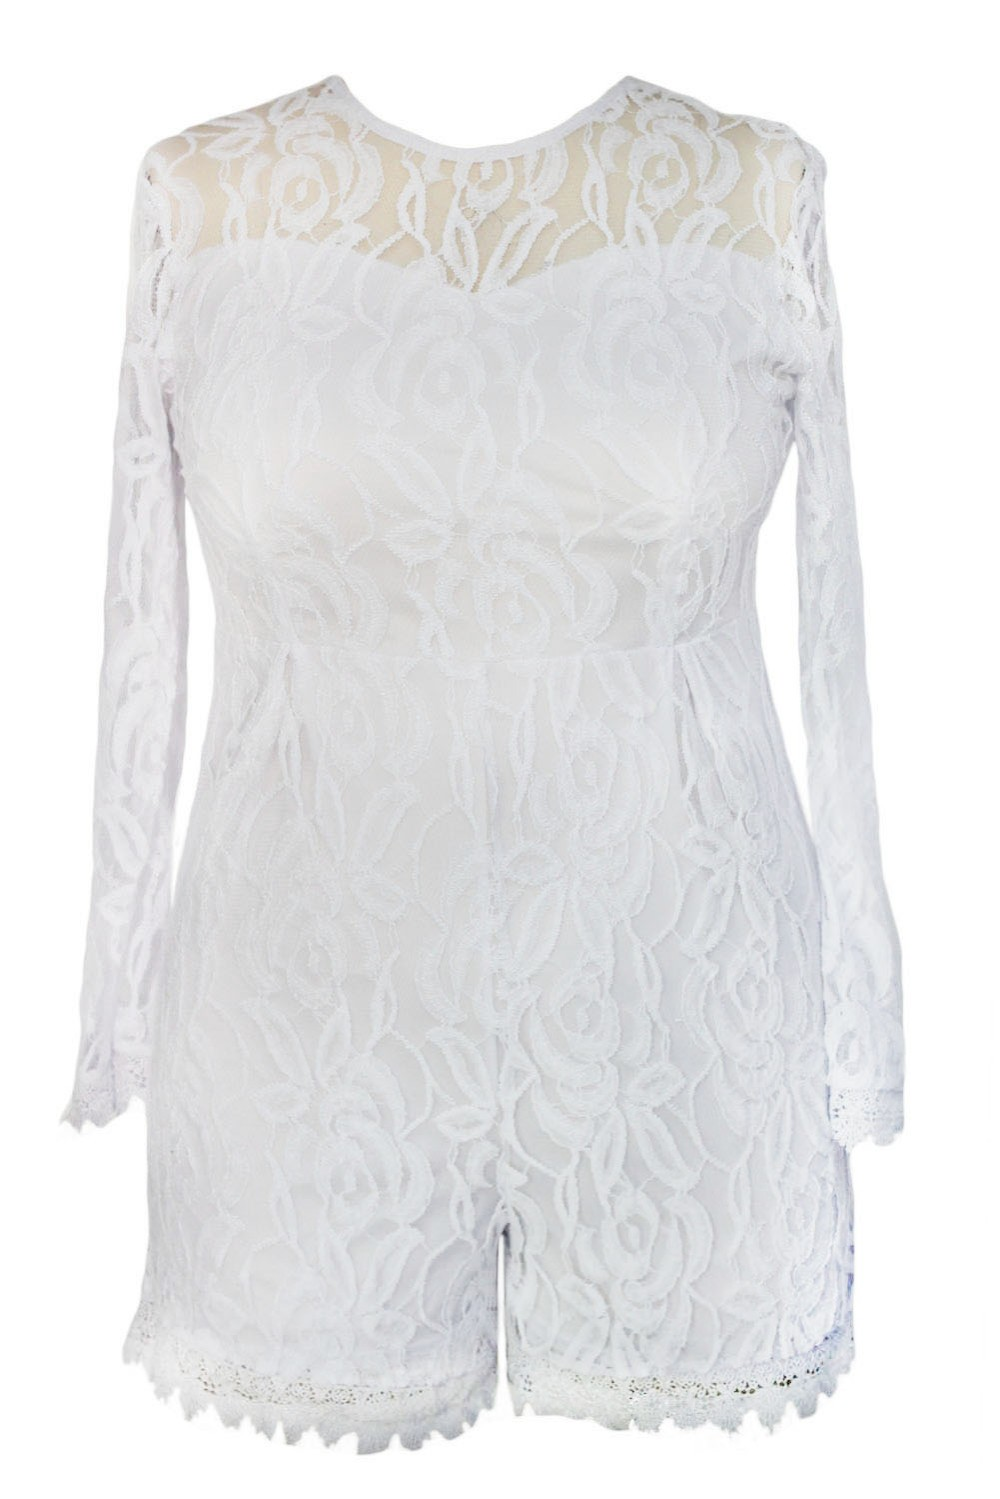 White-Plus-Size-Long-Sleeve-Lace-Romper-LC60599-1-3